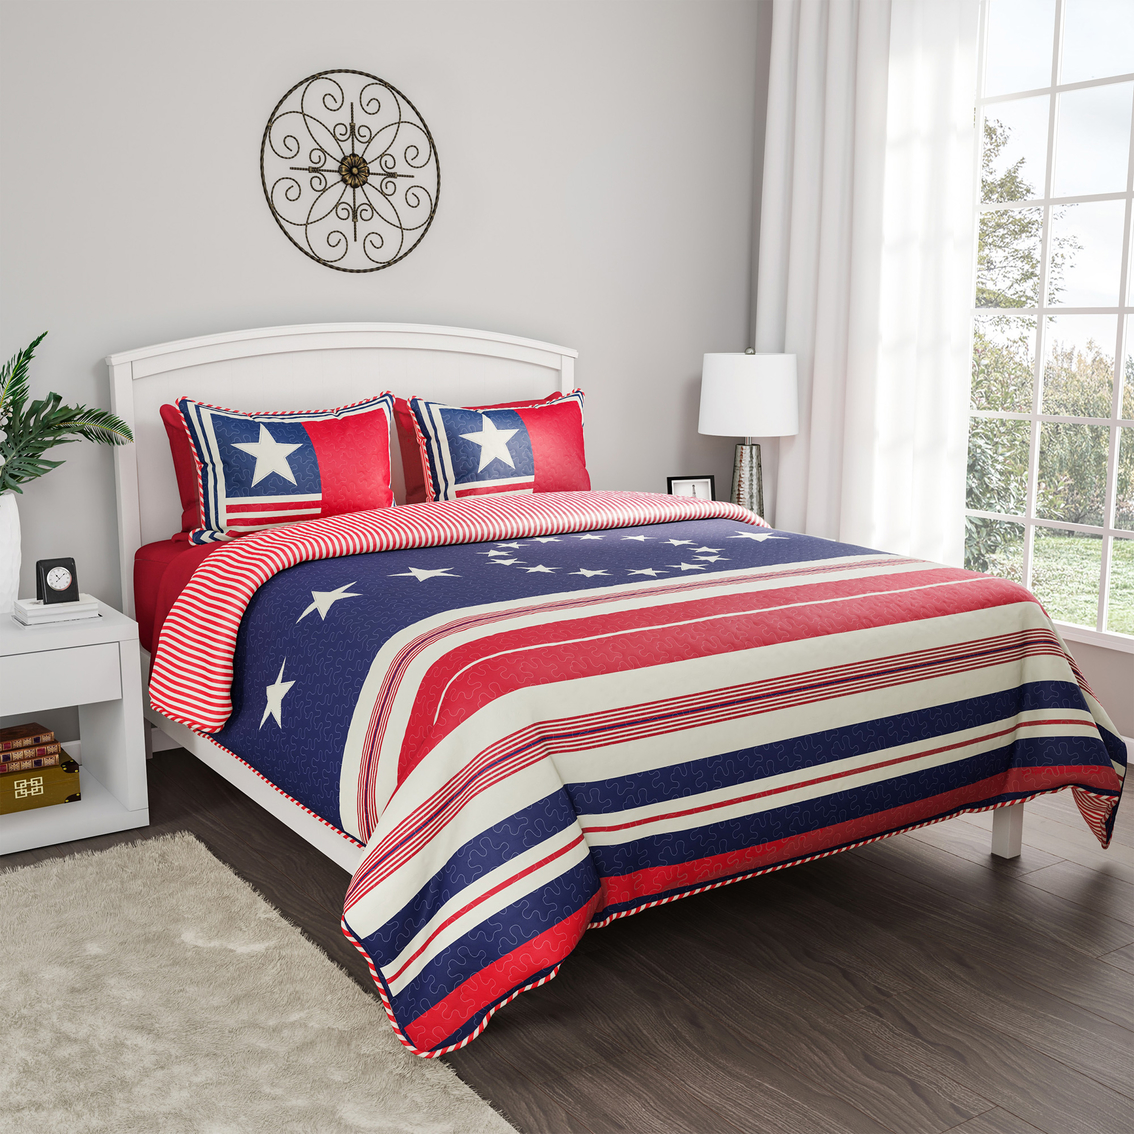 Queen Quilt 3 PC American Flag Patriotic Red White Blue Set With Shams